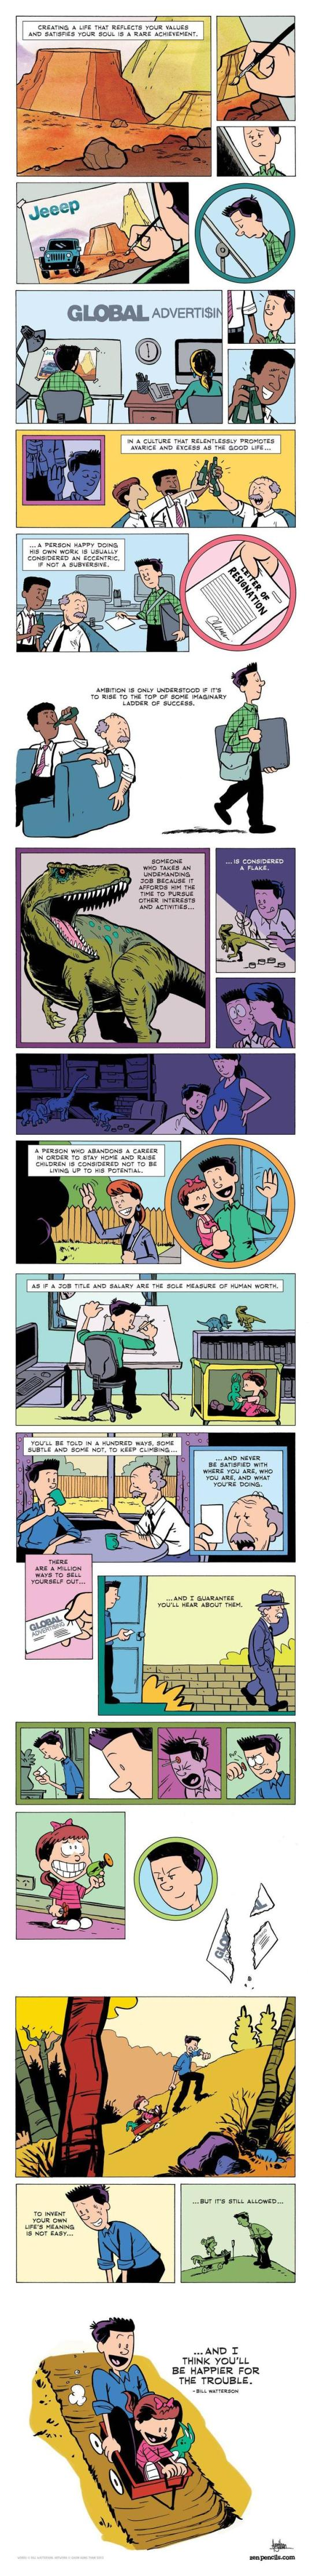 Bill Watterson cartoon